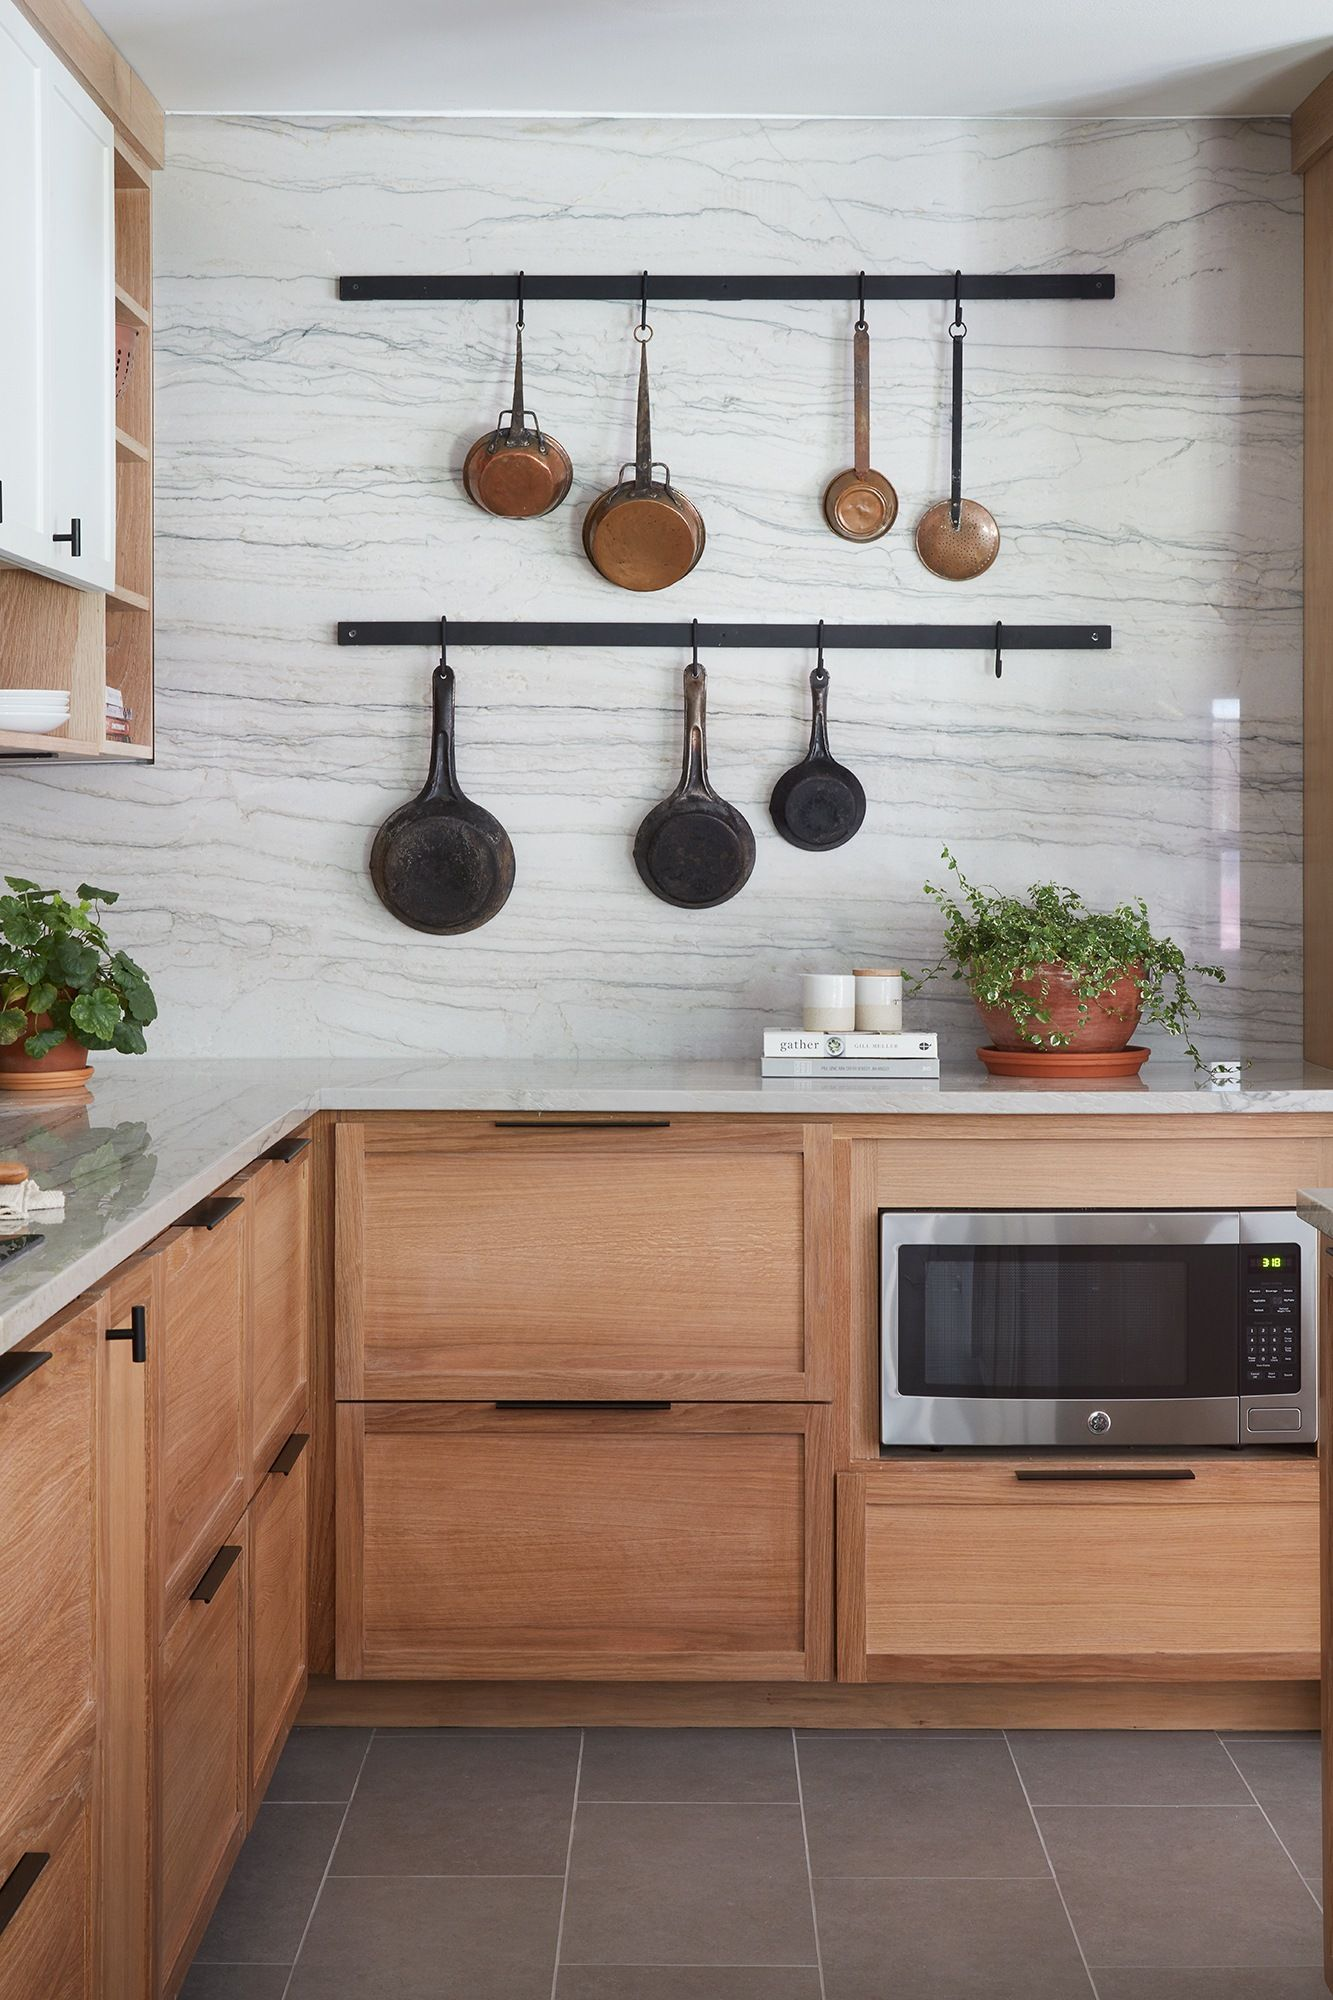 Kitchen Design Tips from La Pequeña Colina | Fixer upper episodes on fixer upper style, fixer upper renovation, rental kitchen ideas, fixer upper cabinets, fixer upper flooring, fixer upper living rooms, fixer upper decorating, fixer upper bedrooms, fixer upper color, waterfront kitchen ideas, fixer upper doors, fixer upper kitchen makeovers, fixer upper garden, fixer upper decor, fixer upper kitchen counter, fixer upper kitchen islands, handicap accessible kitchen ideas, fixer upper dining room, fixer upper diy, fixer upper kitchen backsplash,